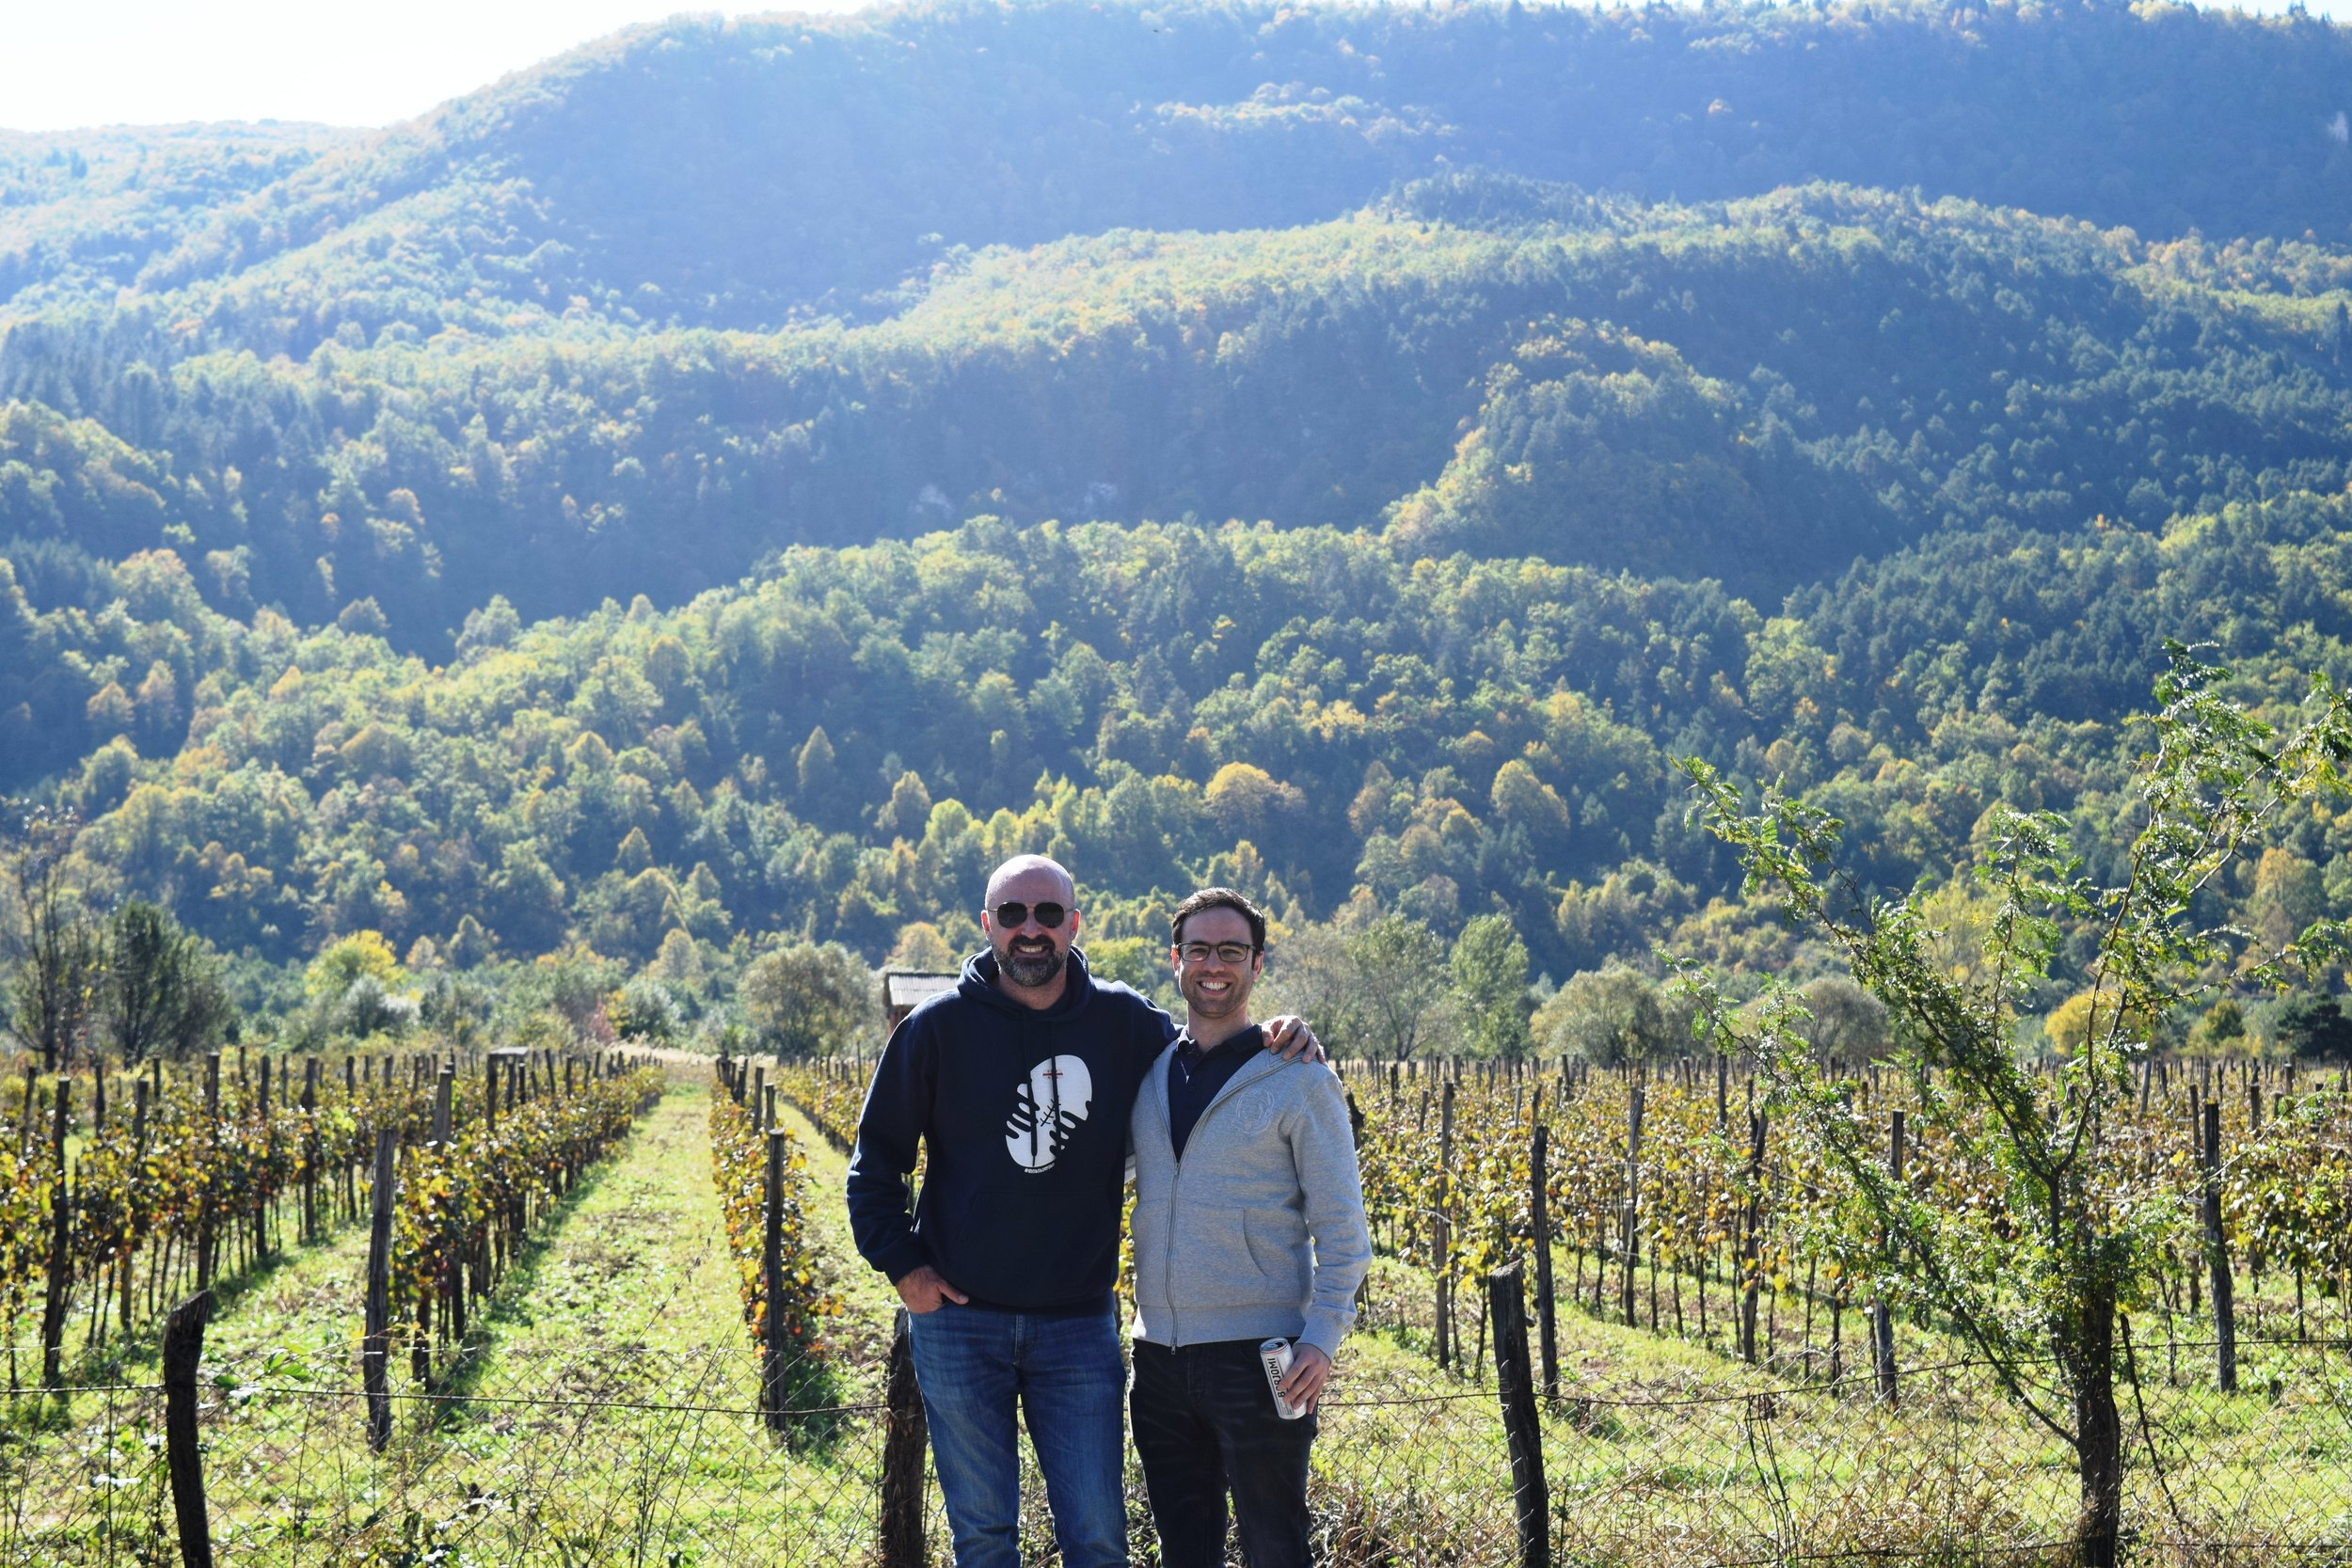 Here we are at the beautiful vineyard of Royal Khvanchkara in Ambrolauri, Western Georgia